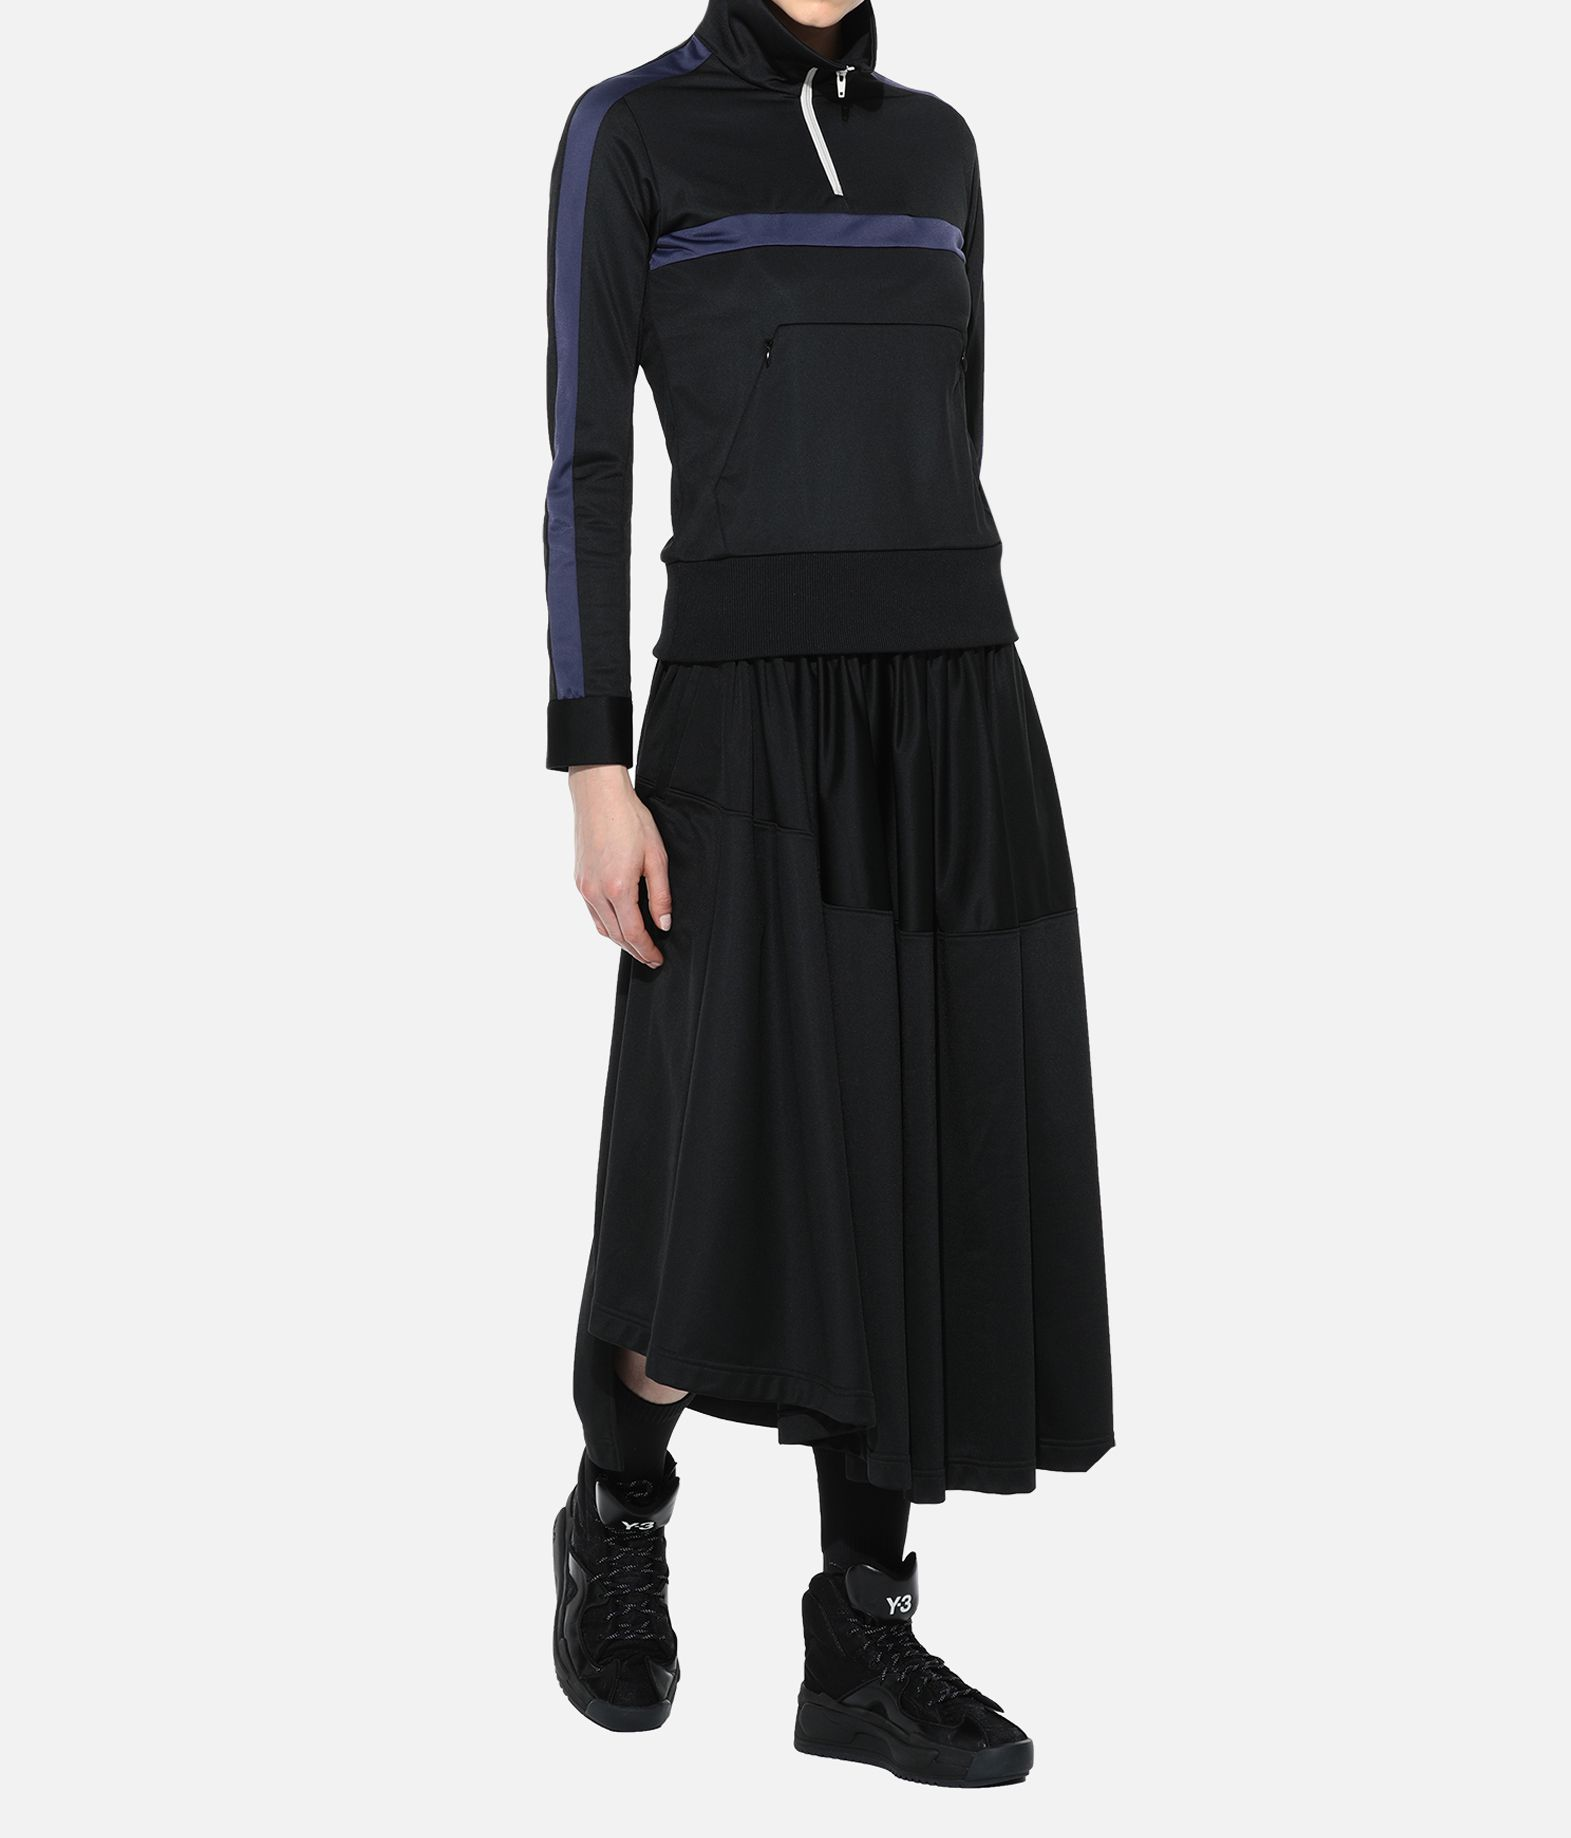 Y-3 Y-3 Firebird Track Skirt 3/4 length skirt Woman a